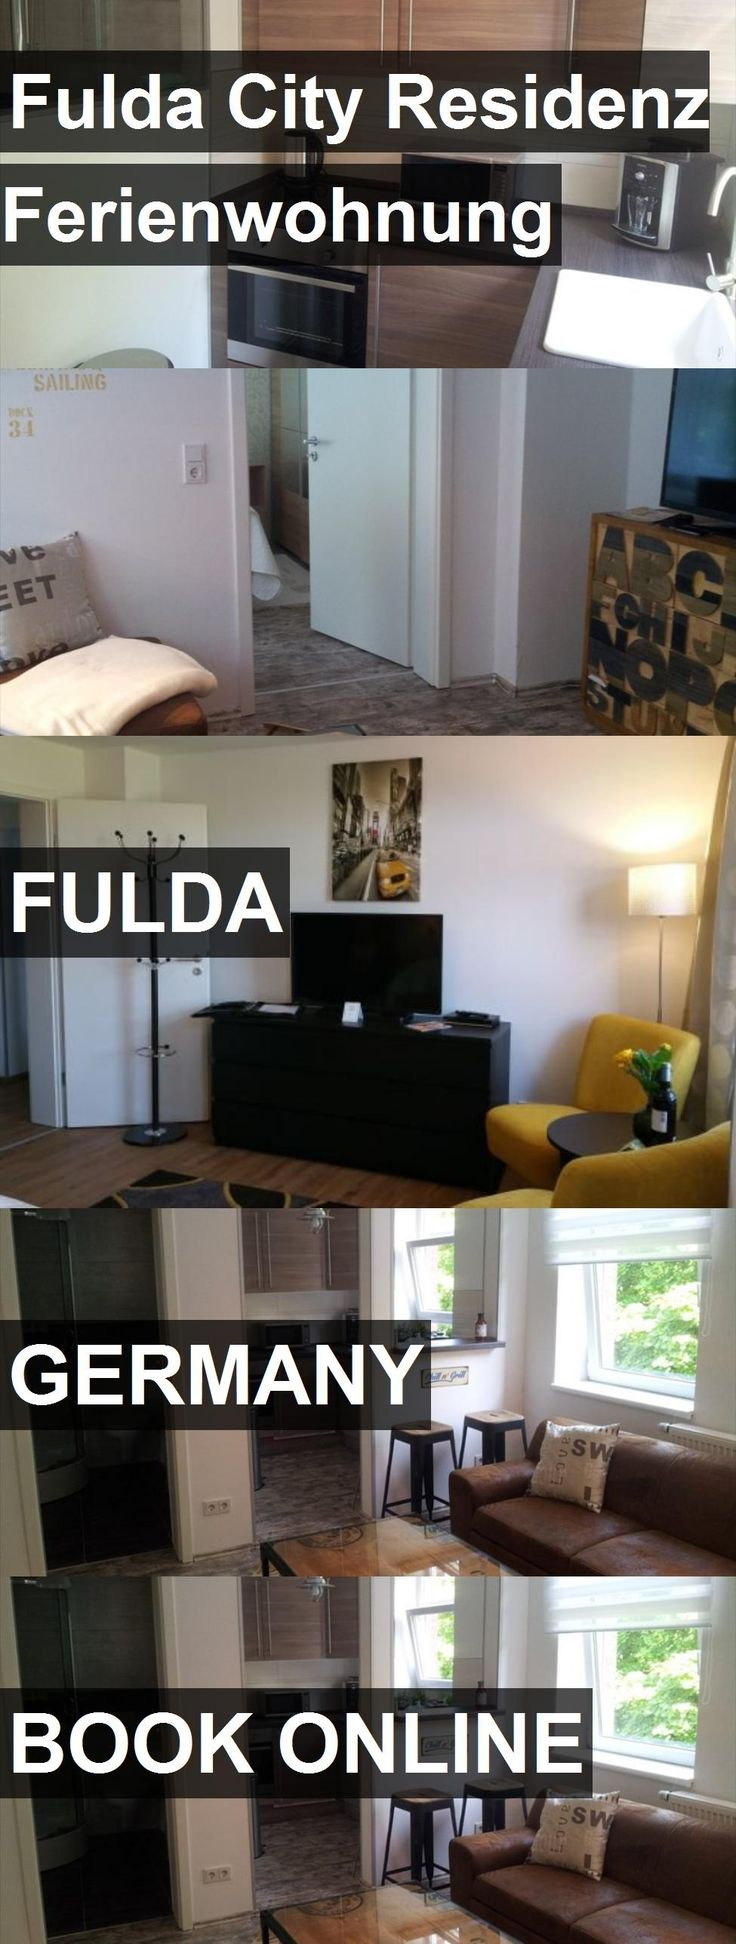 Hotel Fulda City Residenz Ferienwohnung in Fulda, Germany. For more information, photos, reviews and best prices please follow the link. #Germany #Fulda #travel #vacation #hotel